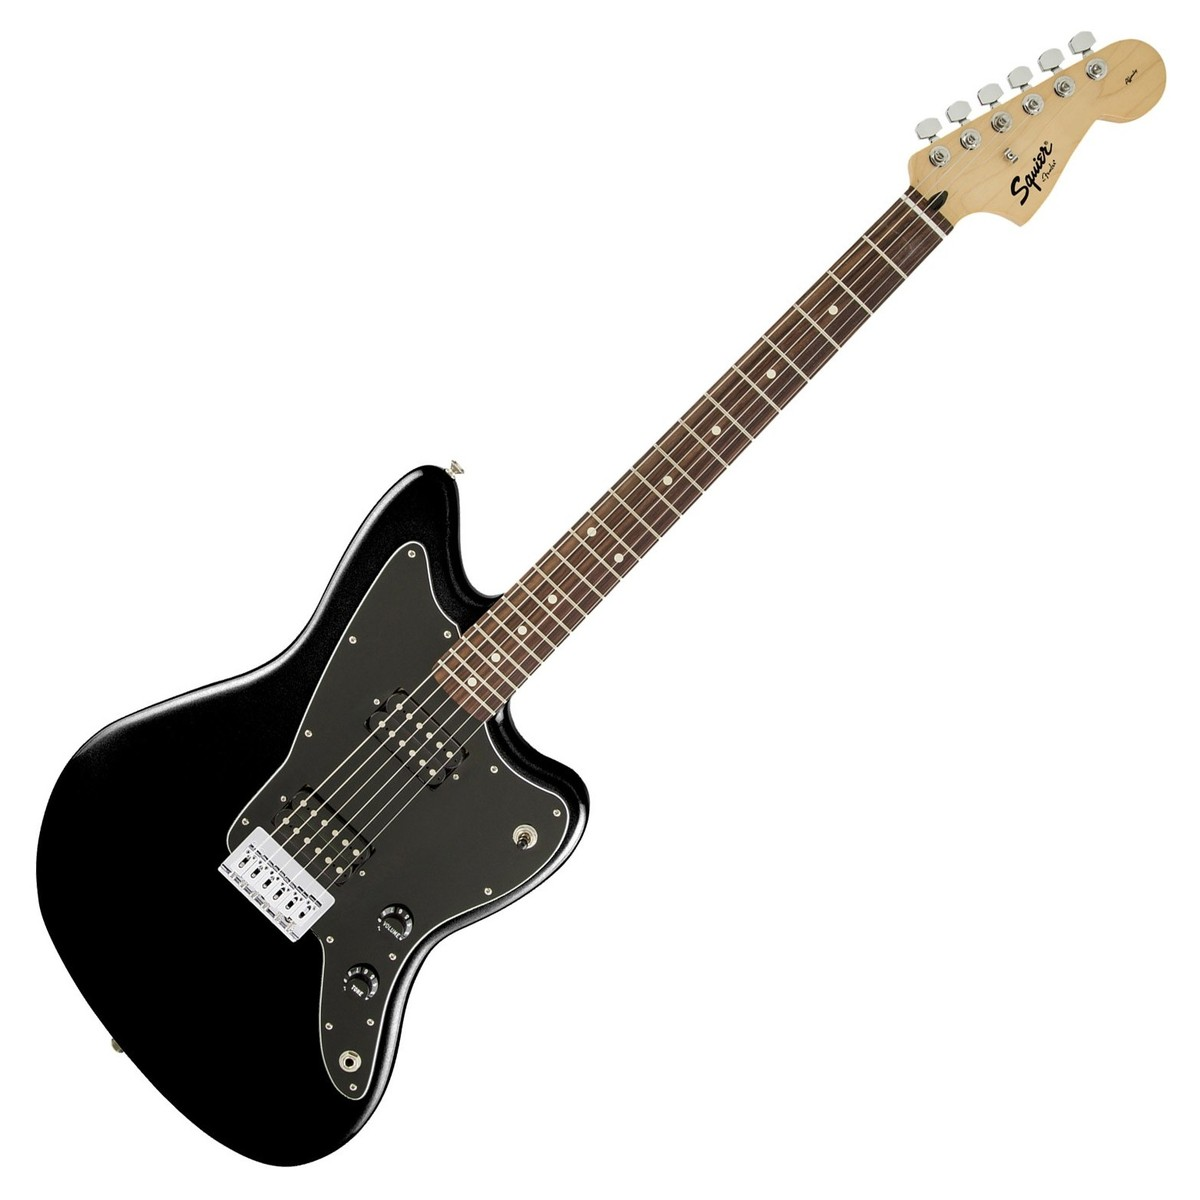 squier by fender affinity jazzmaster hh electric guitar black at. Black Bedroom Furniture Sets. Home Design Ideas